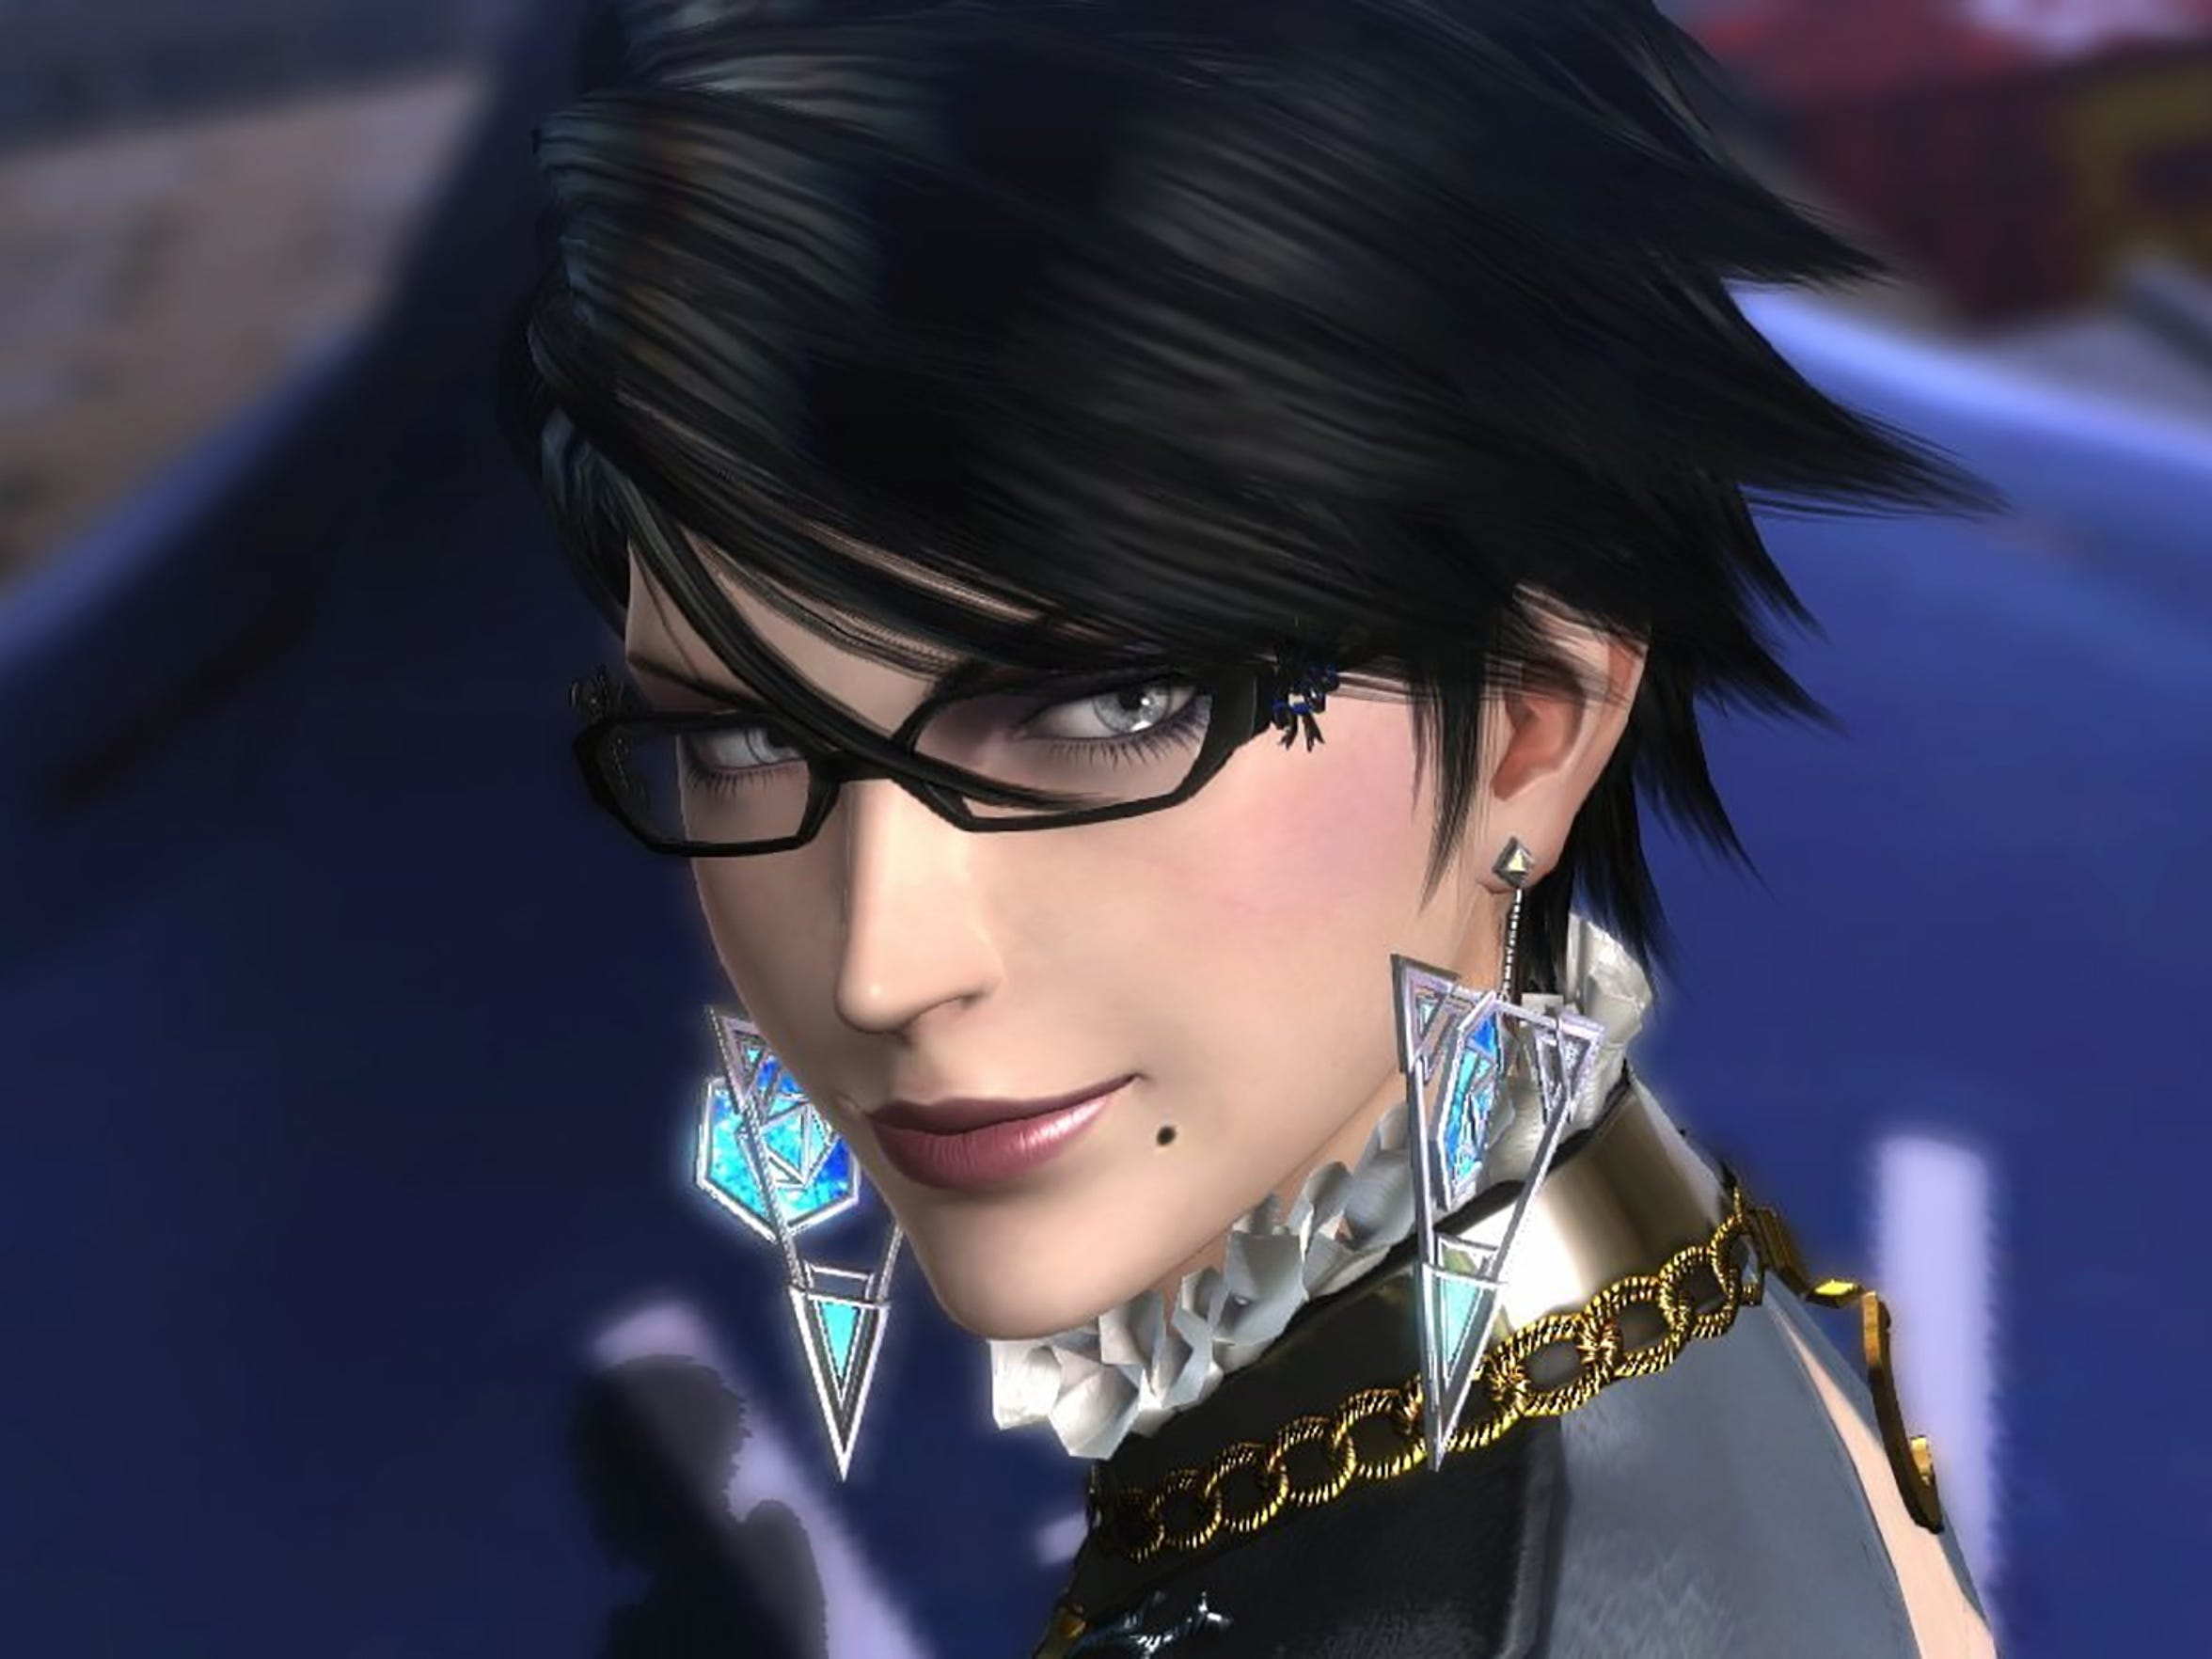 Bayonetta 1 + 2  Collection for the Nintendo Switch.